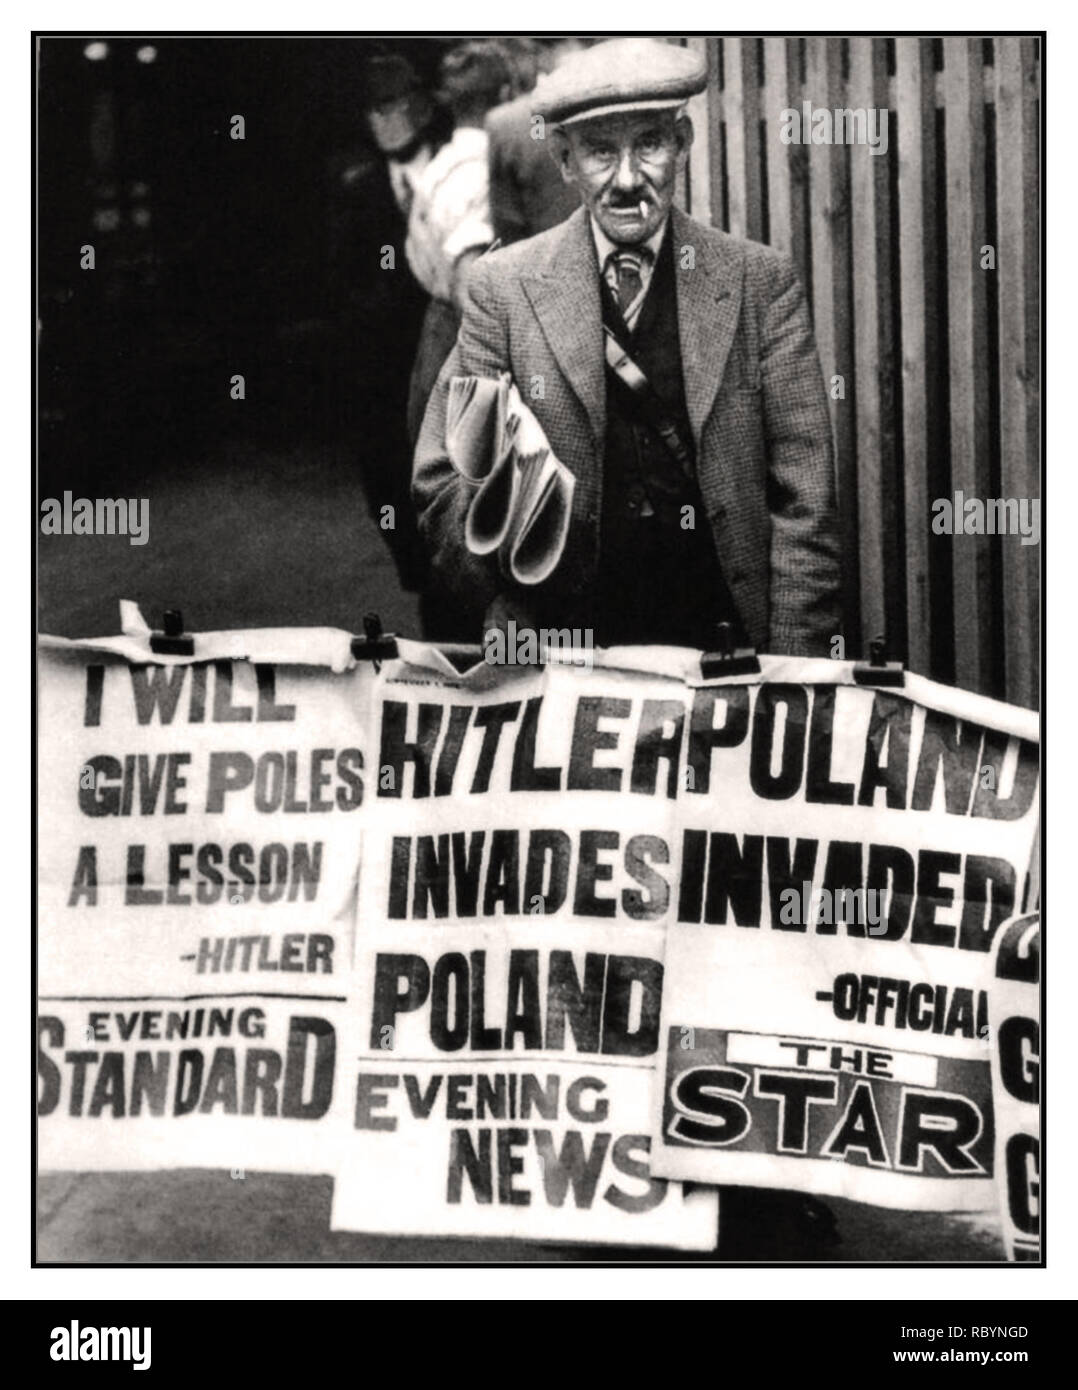 HITLER POLAND INVASION VINTAGE SEPTEMBER 1939 UK NEWSPAPERS HITLER INVADES POLAND  British newspaper seller and posters with news headlines that the Nazis have invaded Poland which started World War II.      Location: London, UK Date: September 1, 1939 Stock Photo